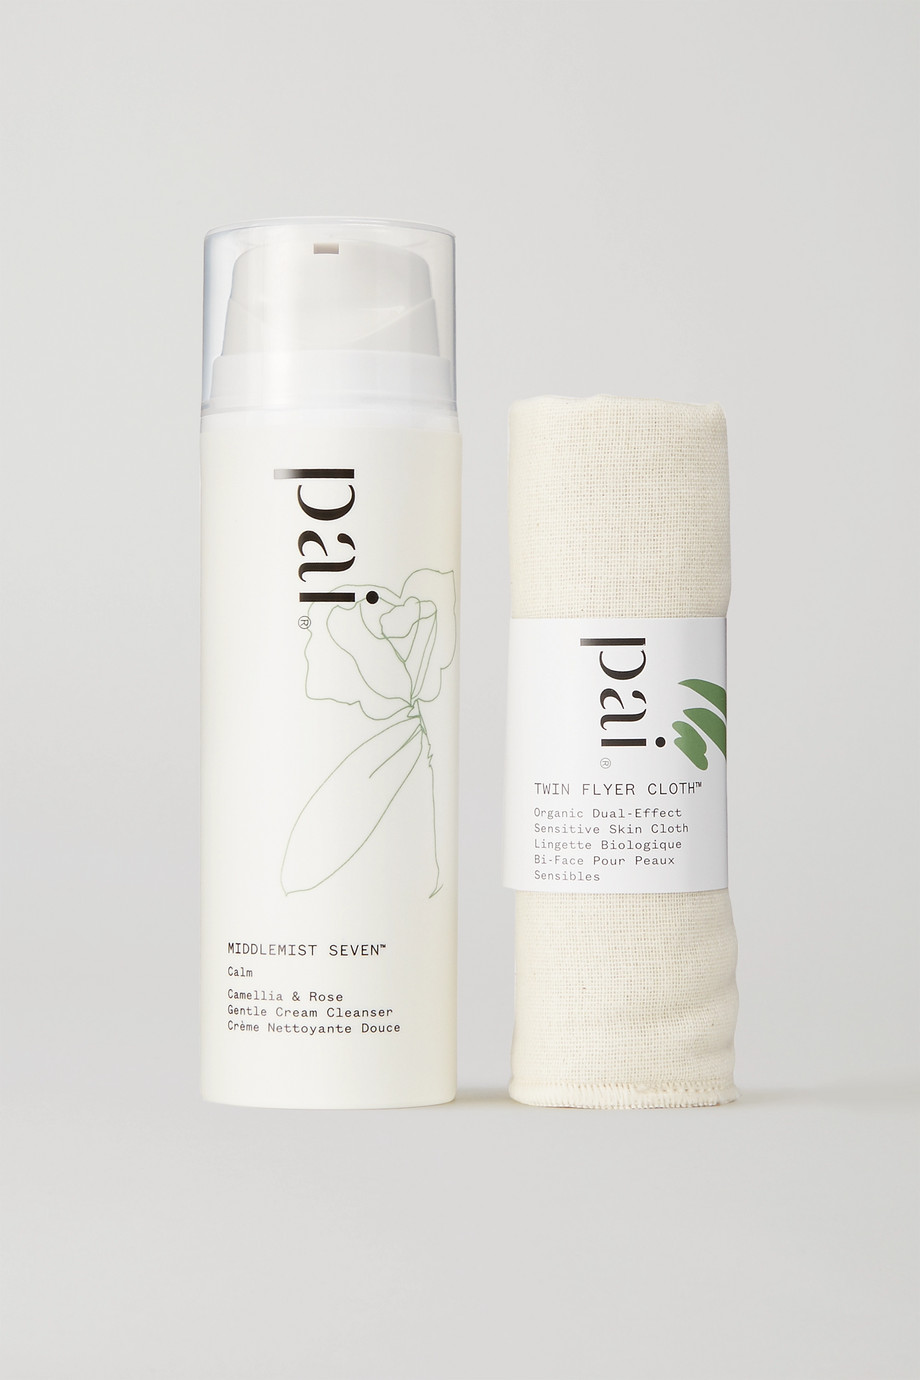 Pai Skincare + NET SUSTAIN Camellia & Rose Gentle Hydrating Cleanser, 100ml